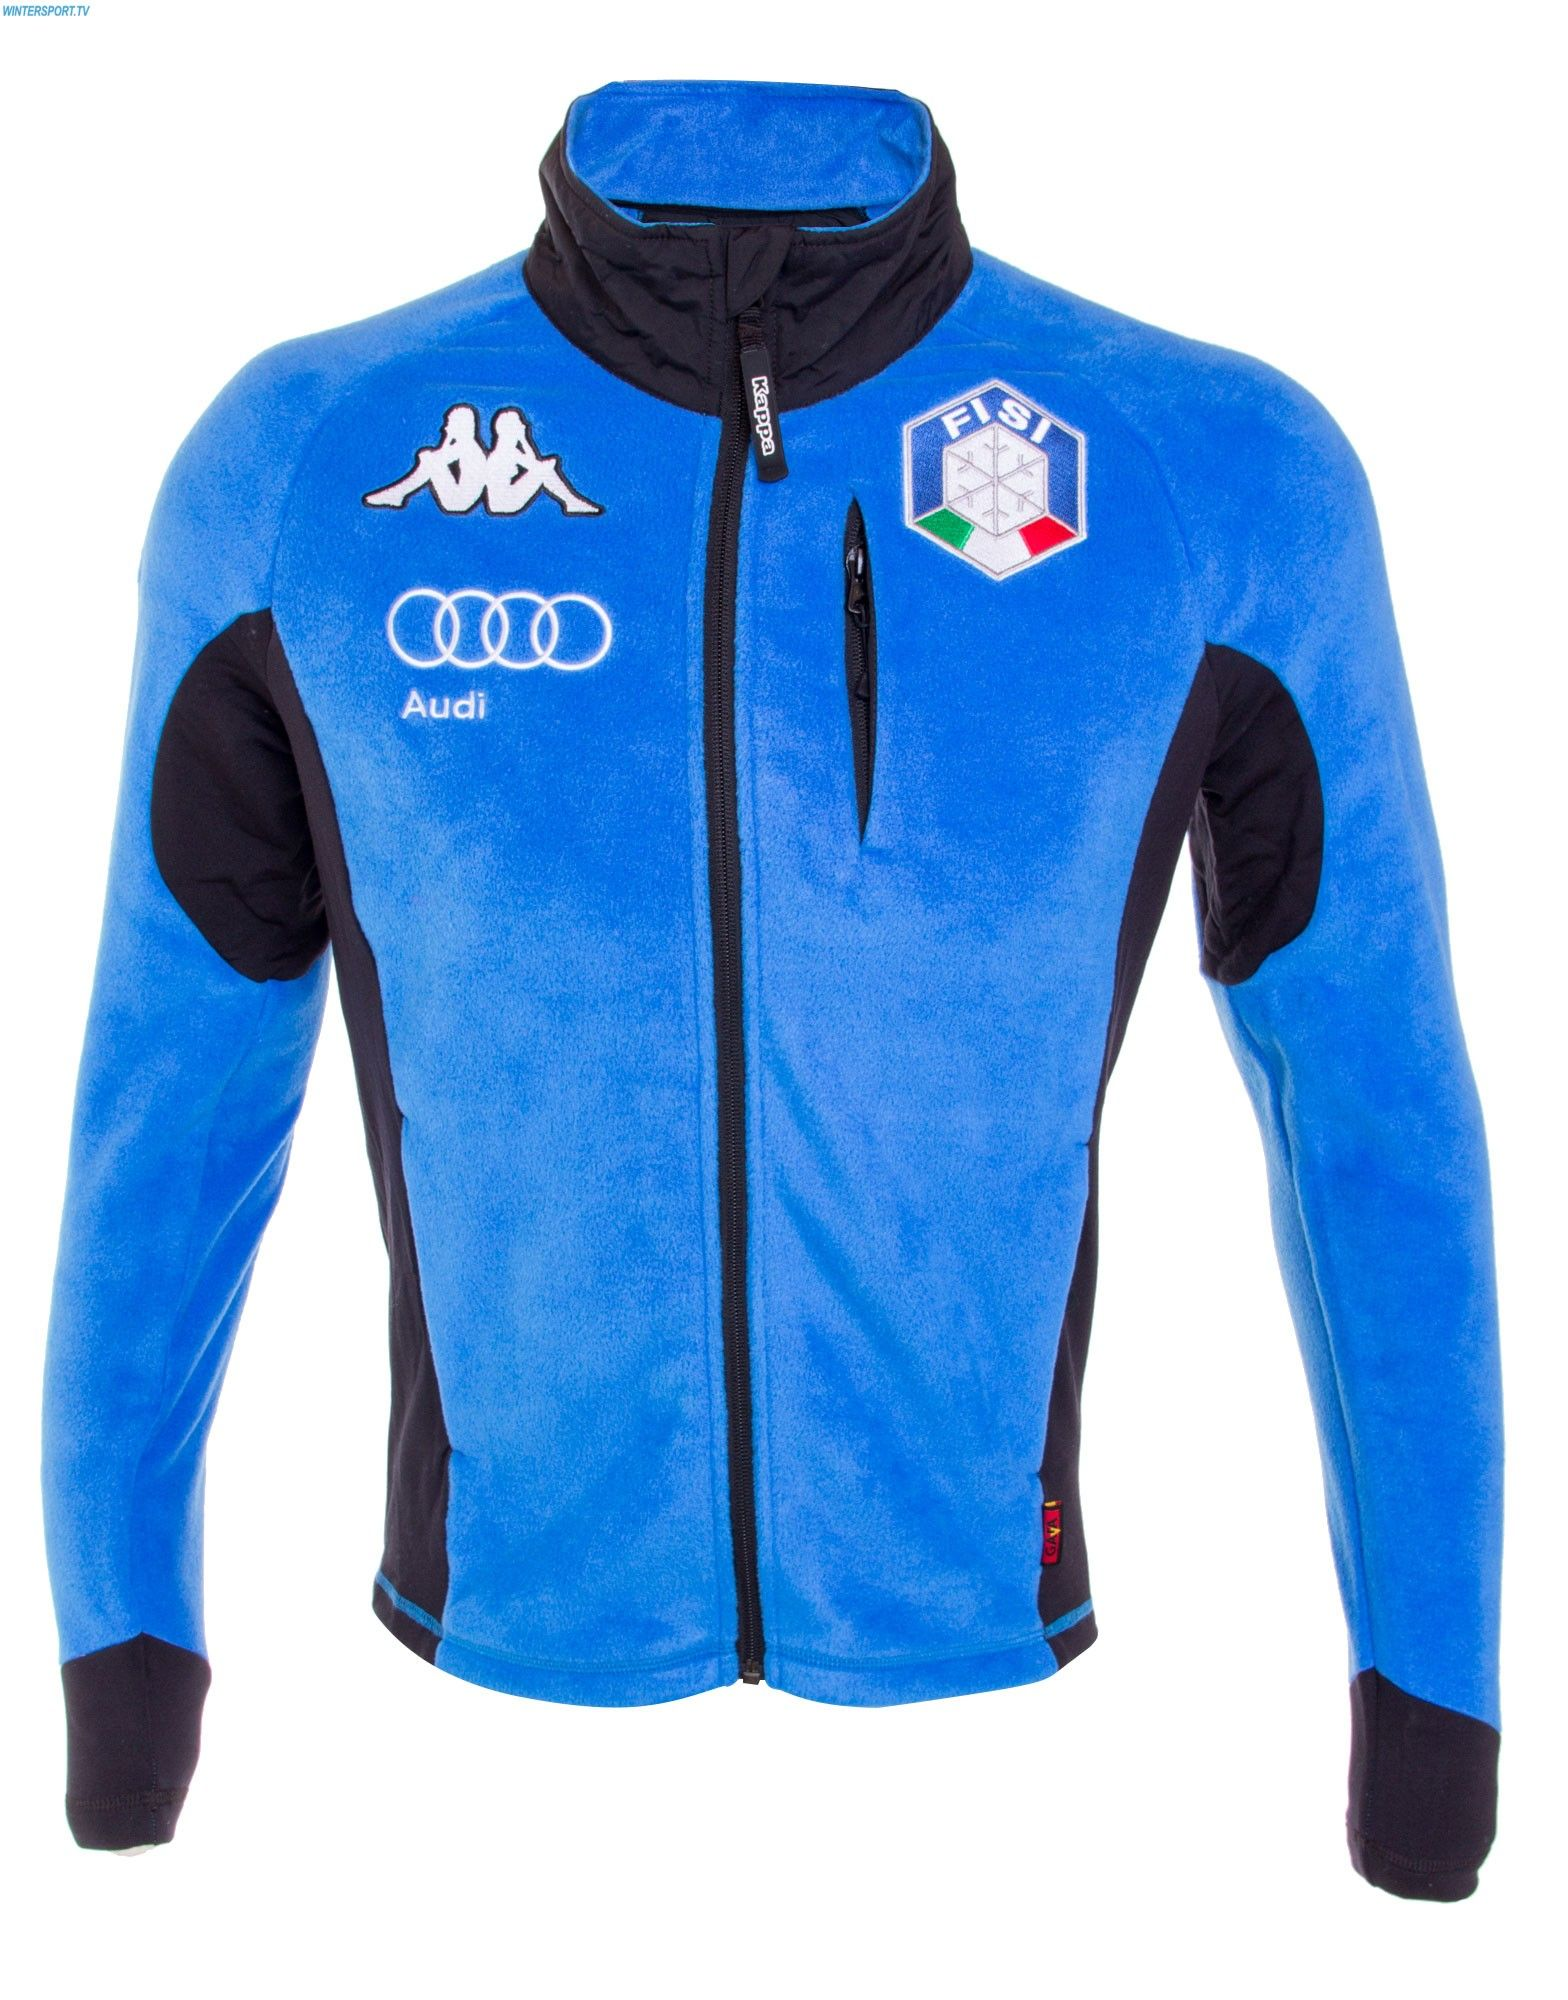 Kappa Men Italian Team FISI Fleece Jacket – Azzurro